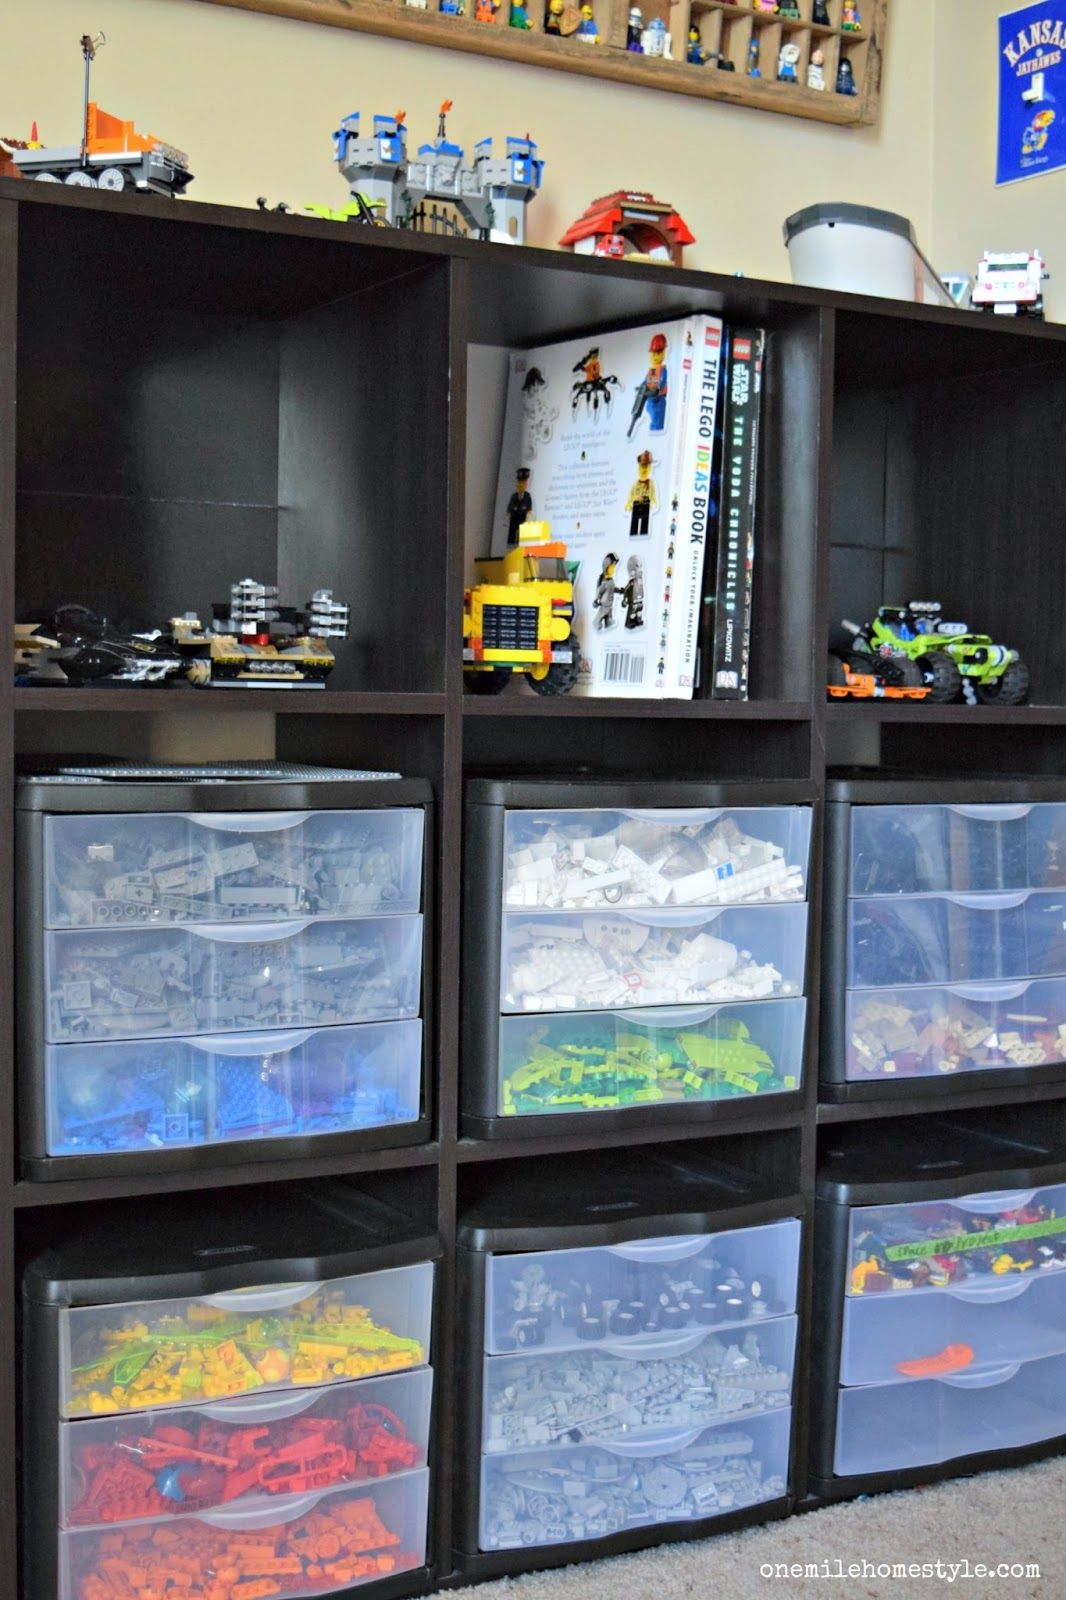 Beau Lego Organization And Storage Hacks   One Mile Home Style